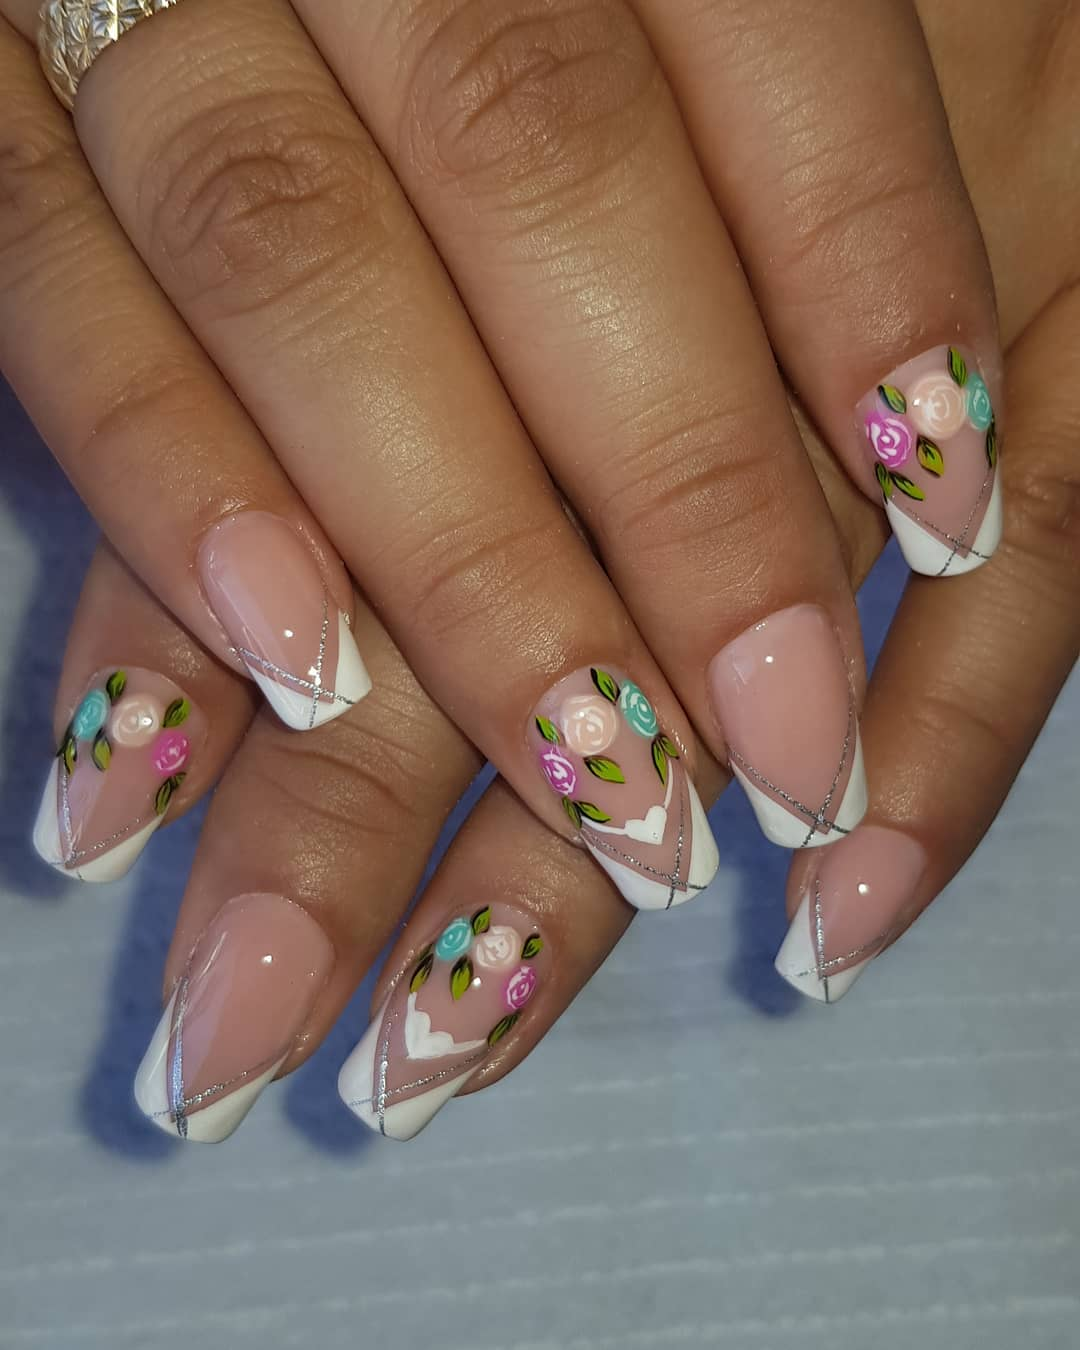 #picture #nails #paintingpaintings #paintinglinks #nailart #paintings #pictures # ...